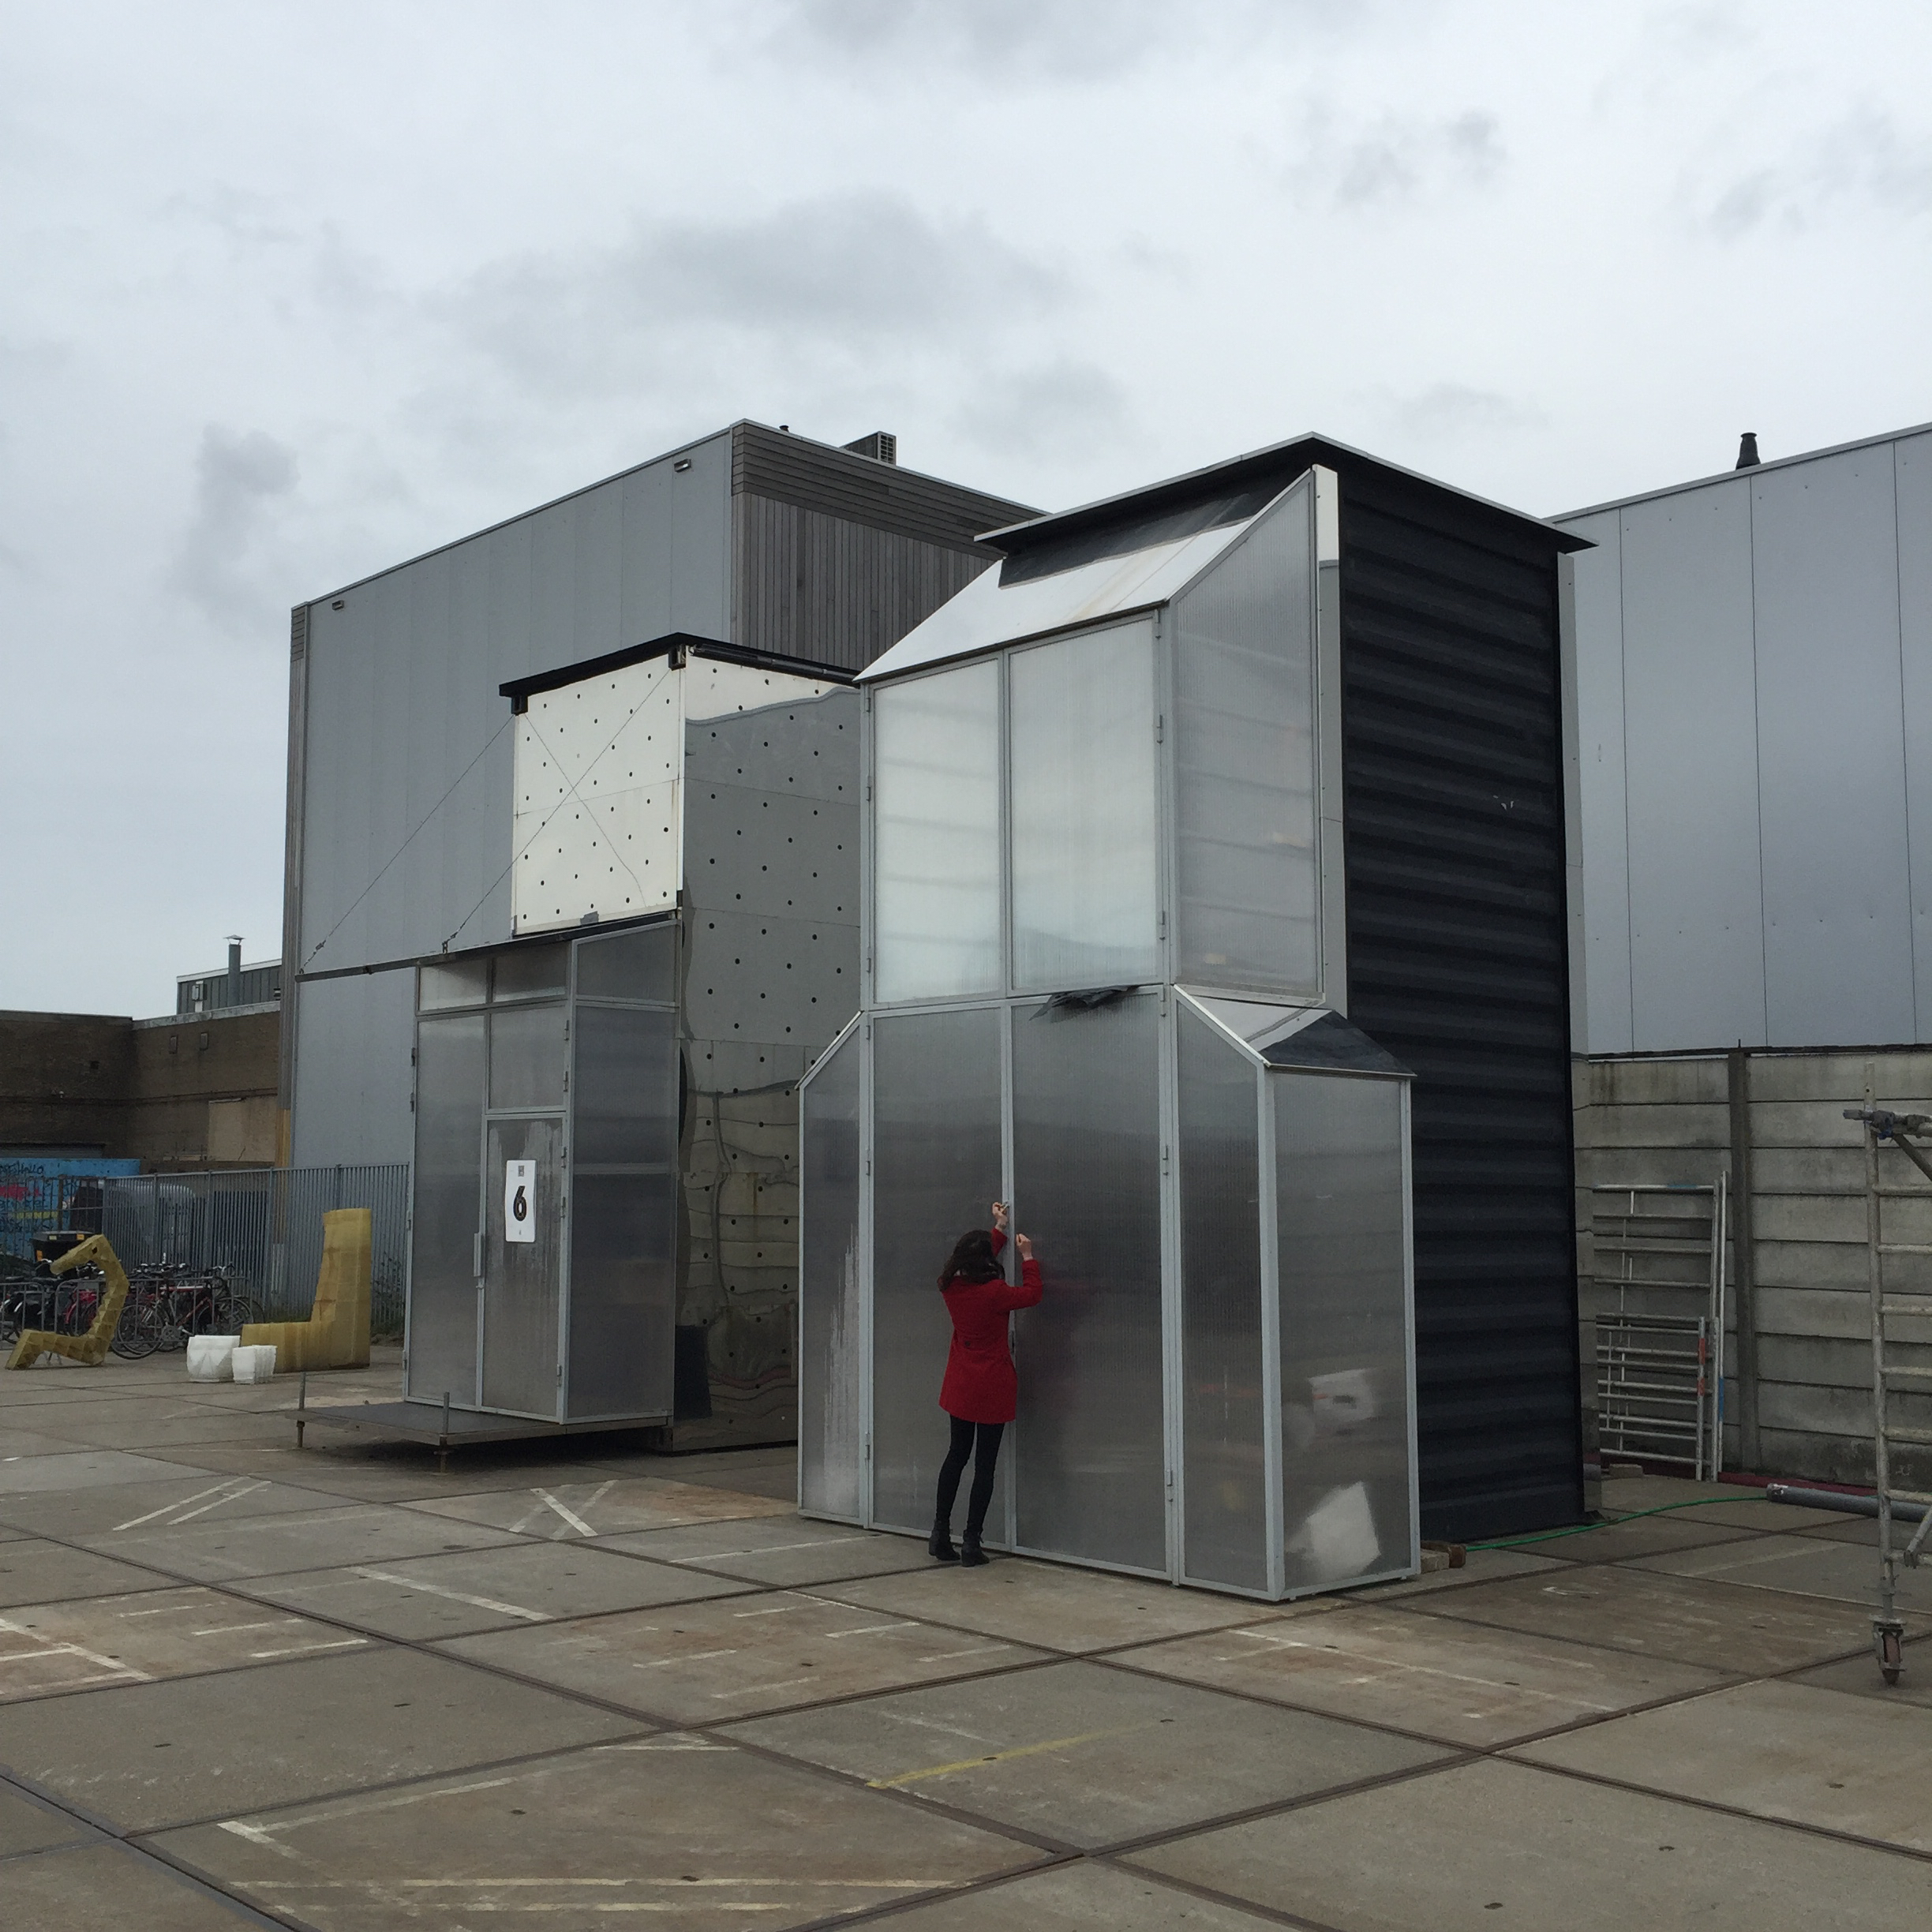 When the optimal design is found, it's sent to the KamerMaker to be 3D printed in actual size. The remotely controlled KamerMaker is working 24/7 inside a shipping container. Visitors are invited to witness the house coming into being part by part.